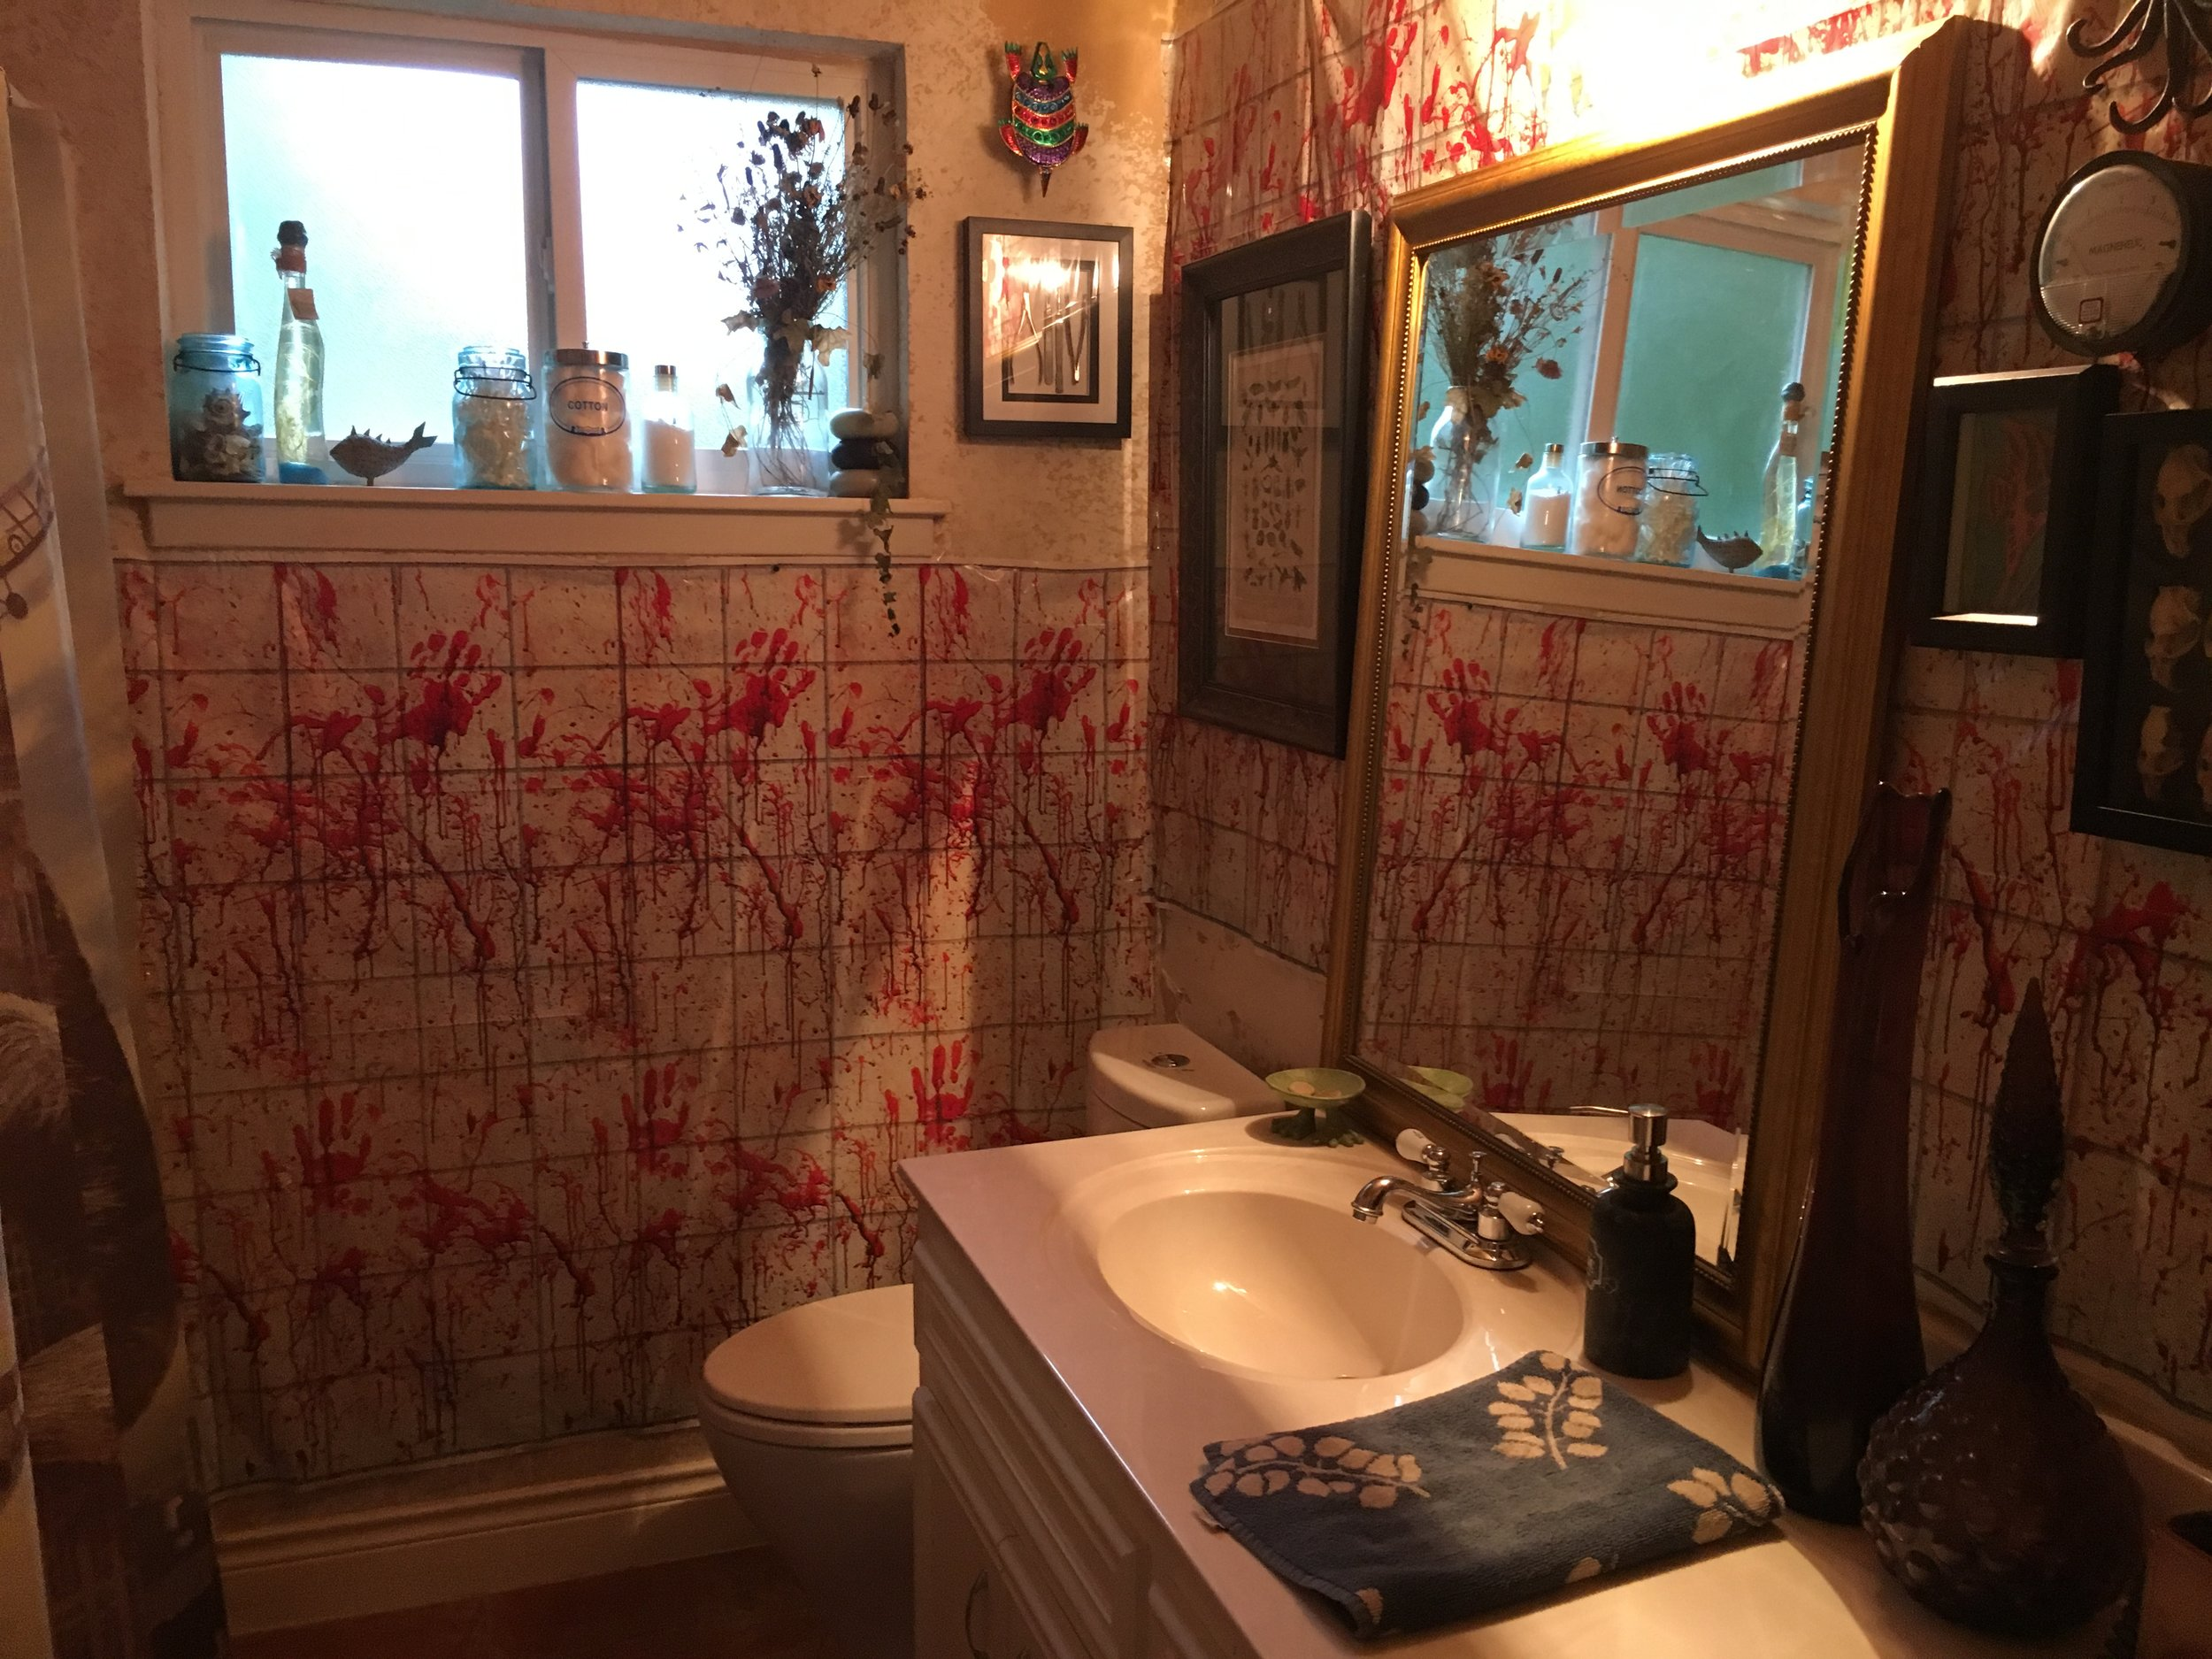 Blood bathroom